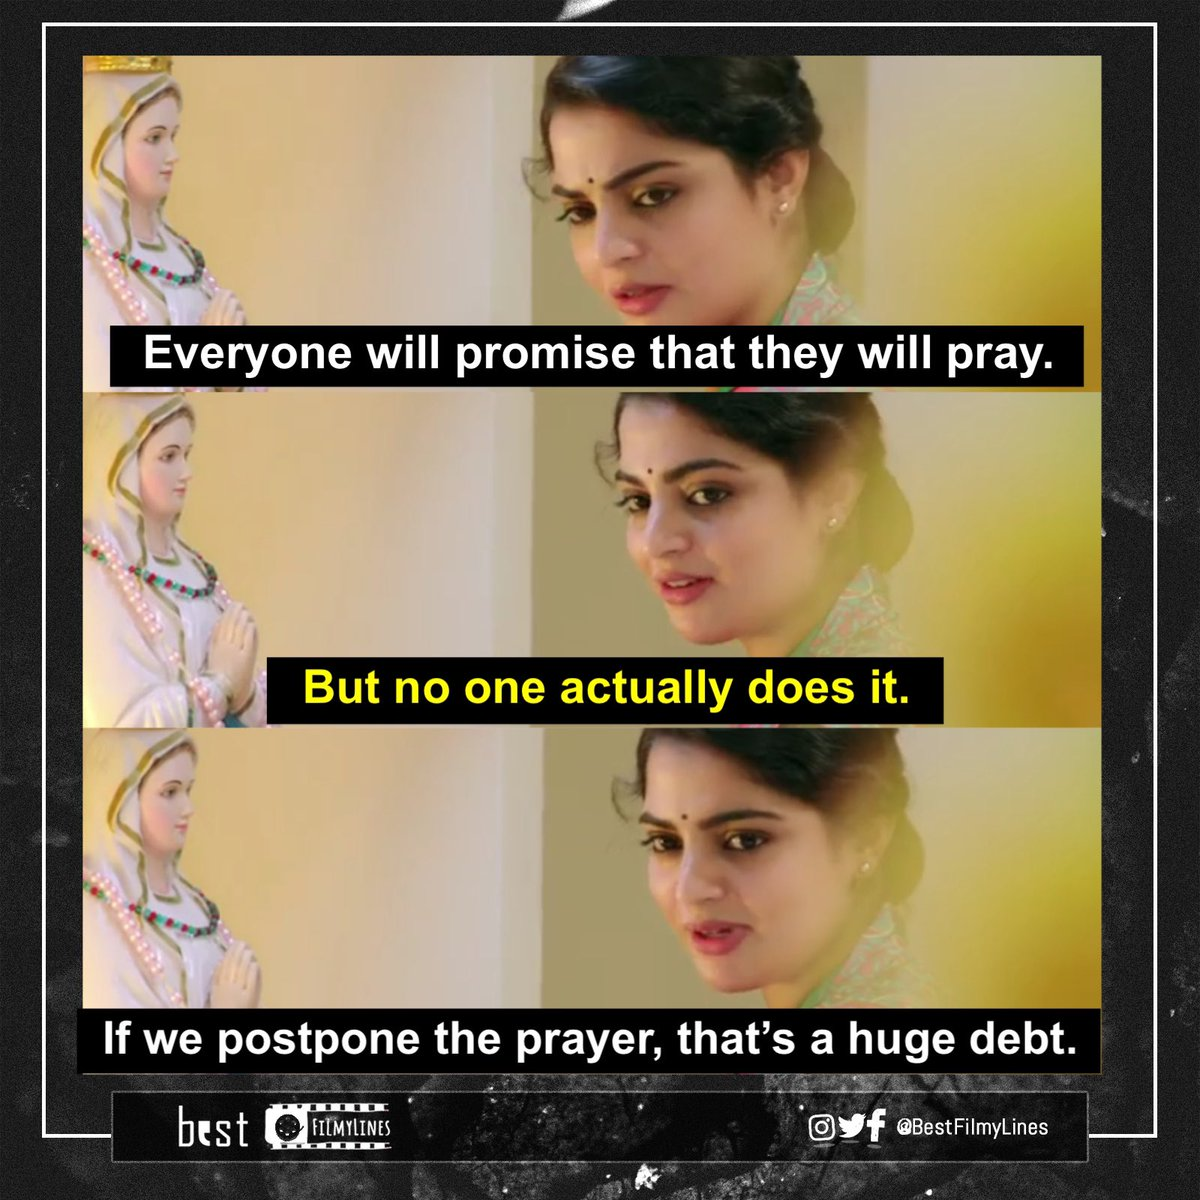 -Oru Yamadan Prema Kadha (2019), dir. B.C. Noufal . . #oruyamadanpremakadha #nikhilavimal #dulquersalmaan #malayalam #malayalamcinema #malayalammovie #malayalamquotes #mollywood #indiancinema #dialogue #dialogues #moviequotes #quote #quotes #bestfilmylines